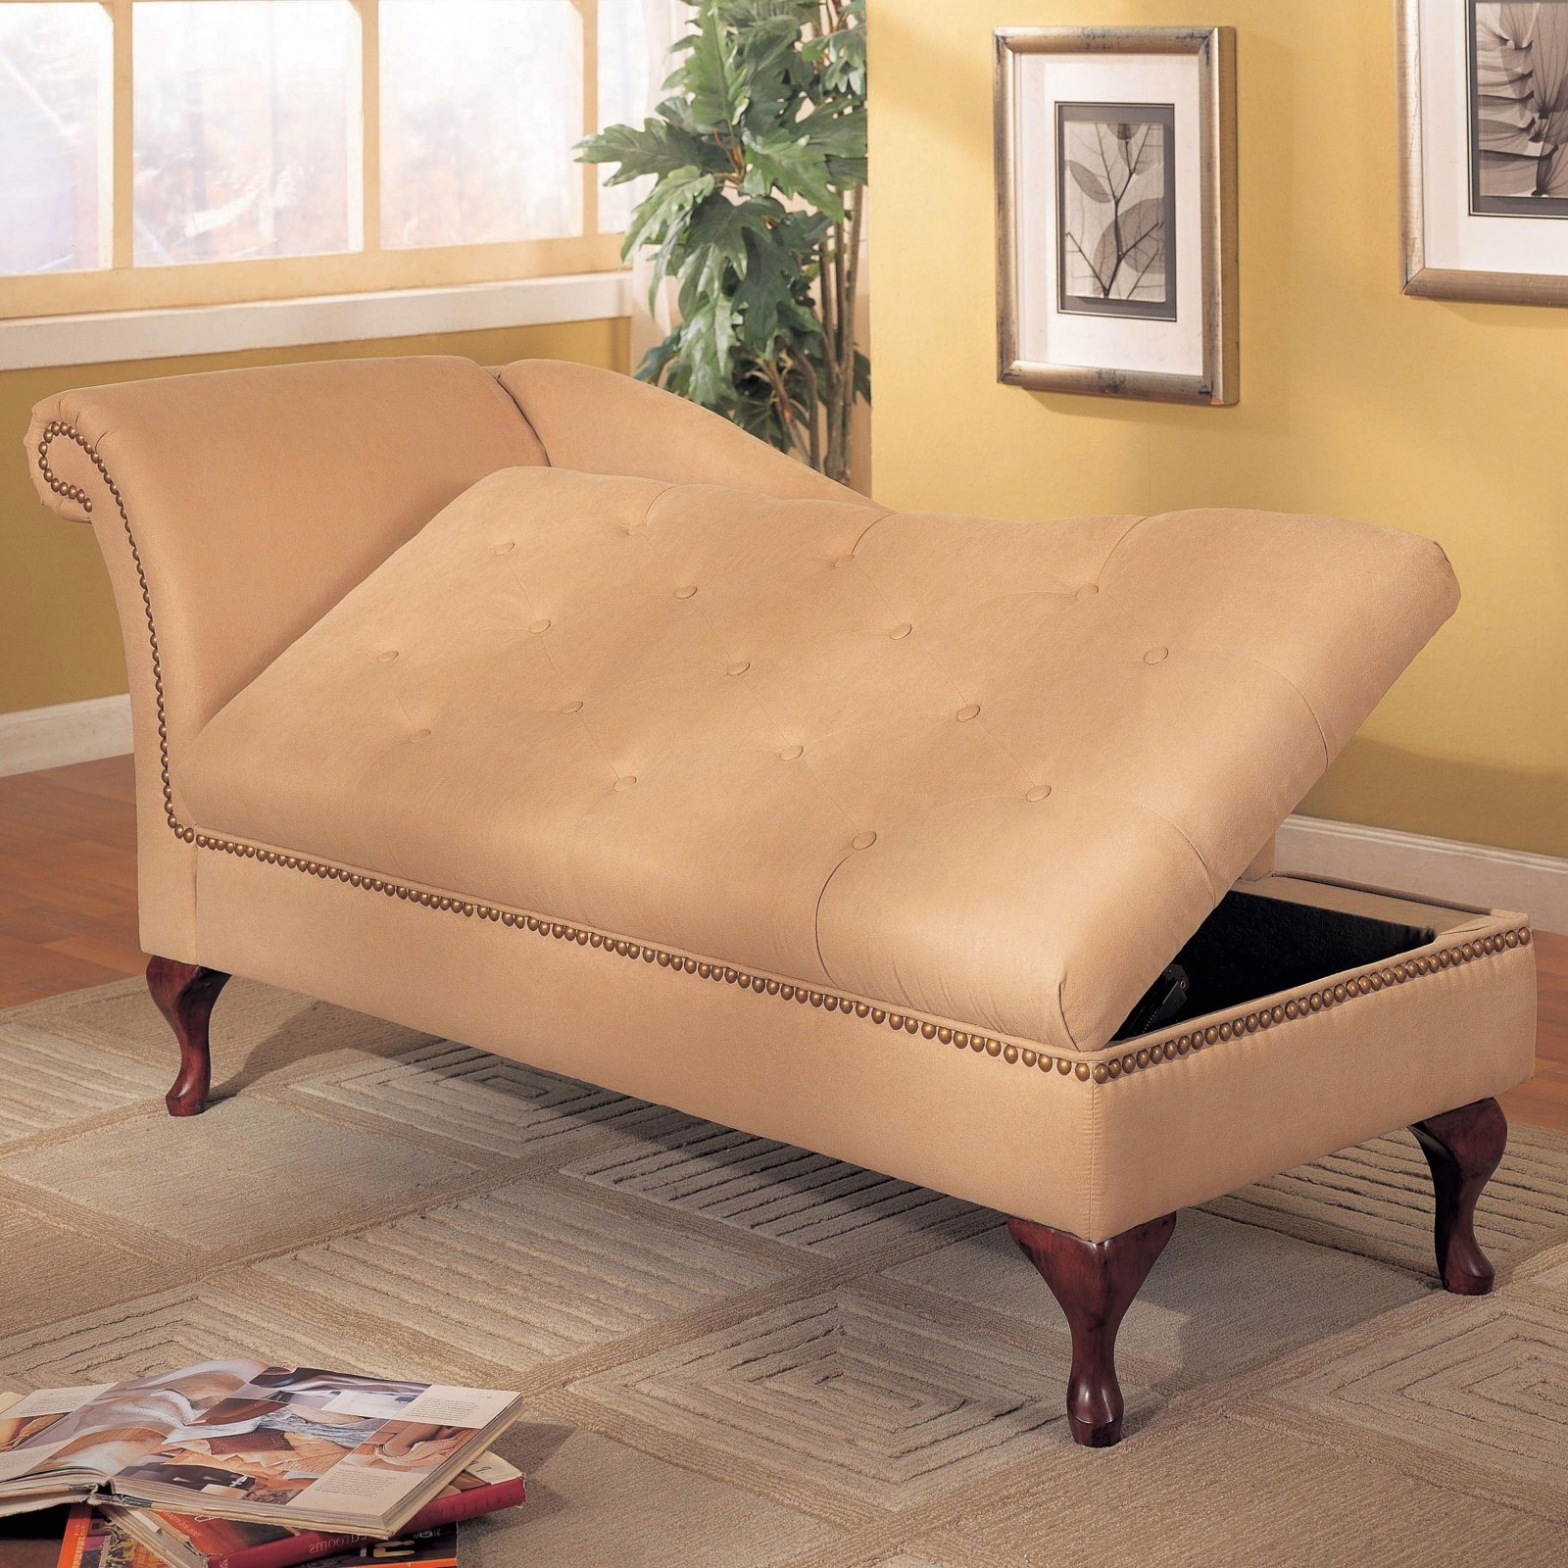 Most Popular Home Decor: Small Bedroom Chair : Cheap Chaise Lounge Chase With Regard To Cheap Chaise Lounge Chairs (View 6 of 15)